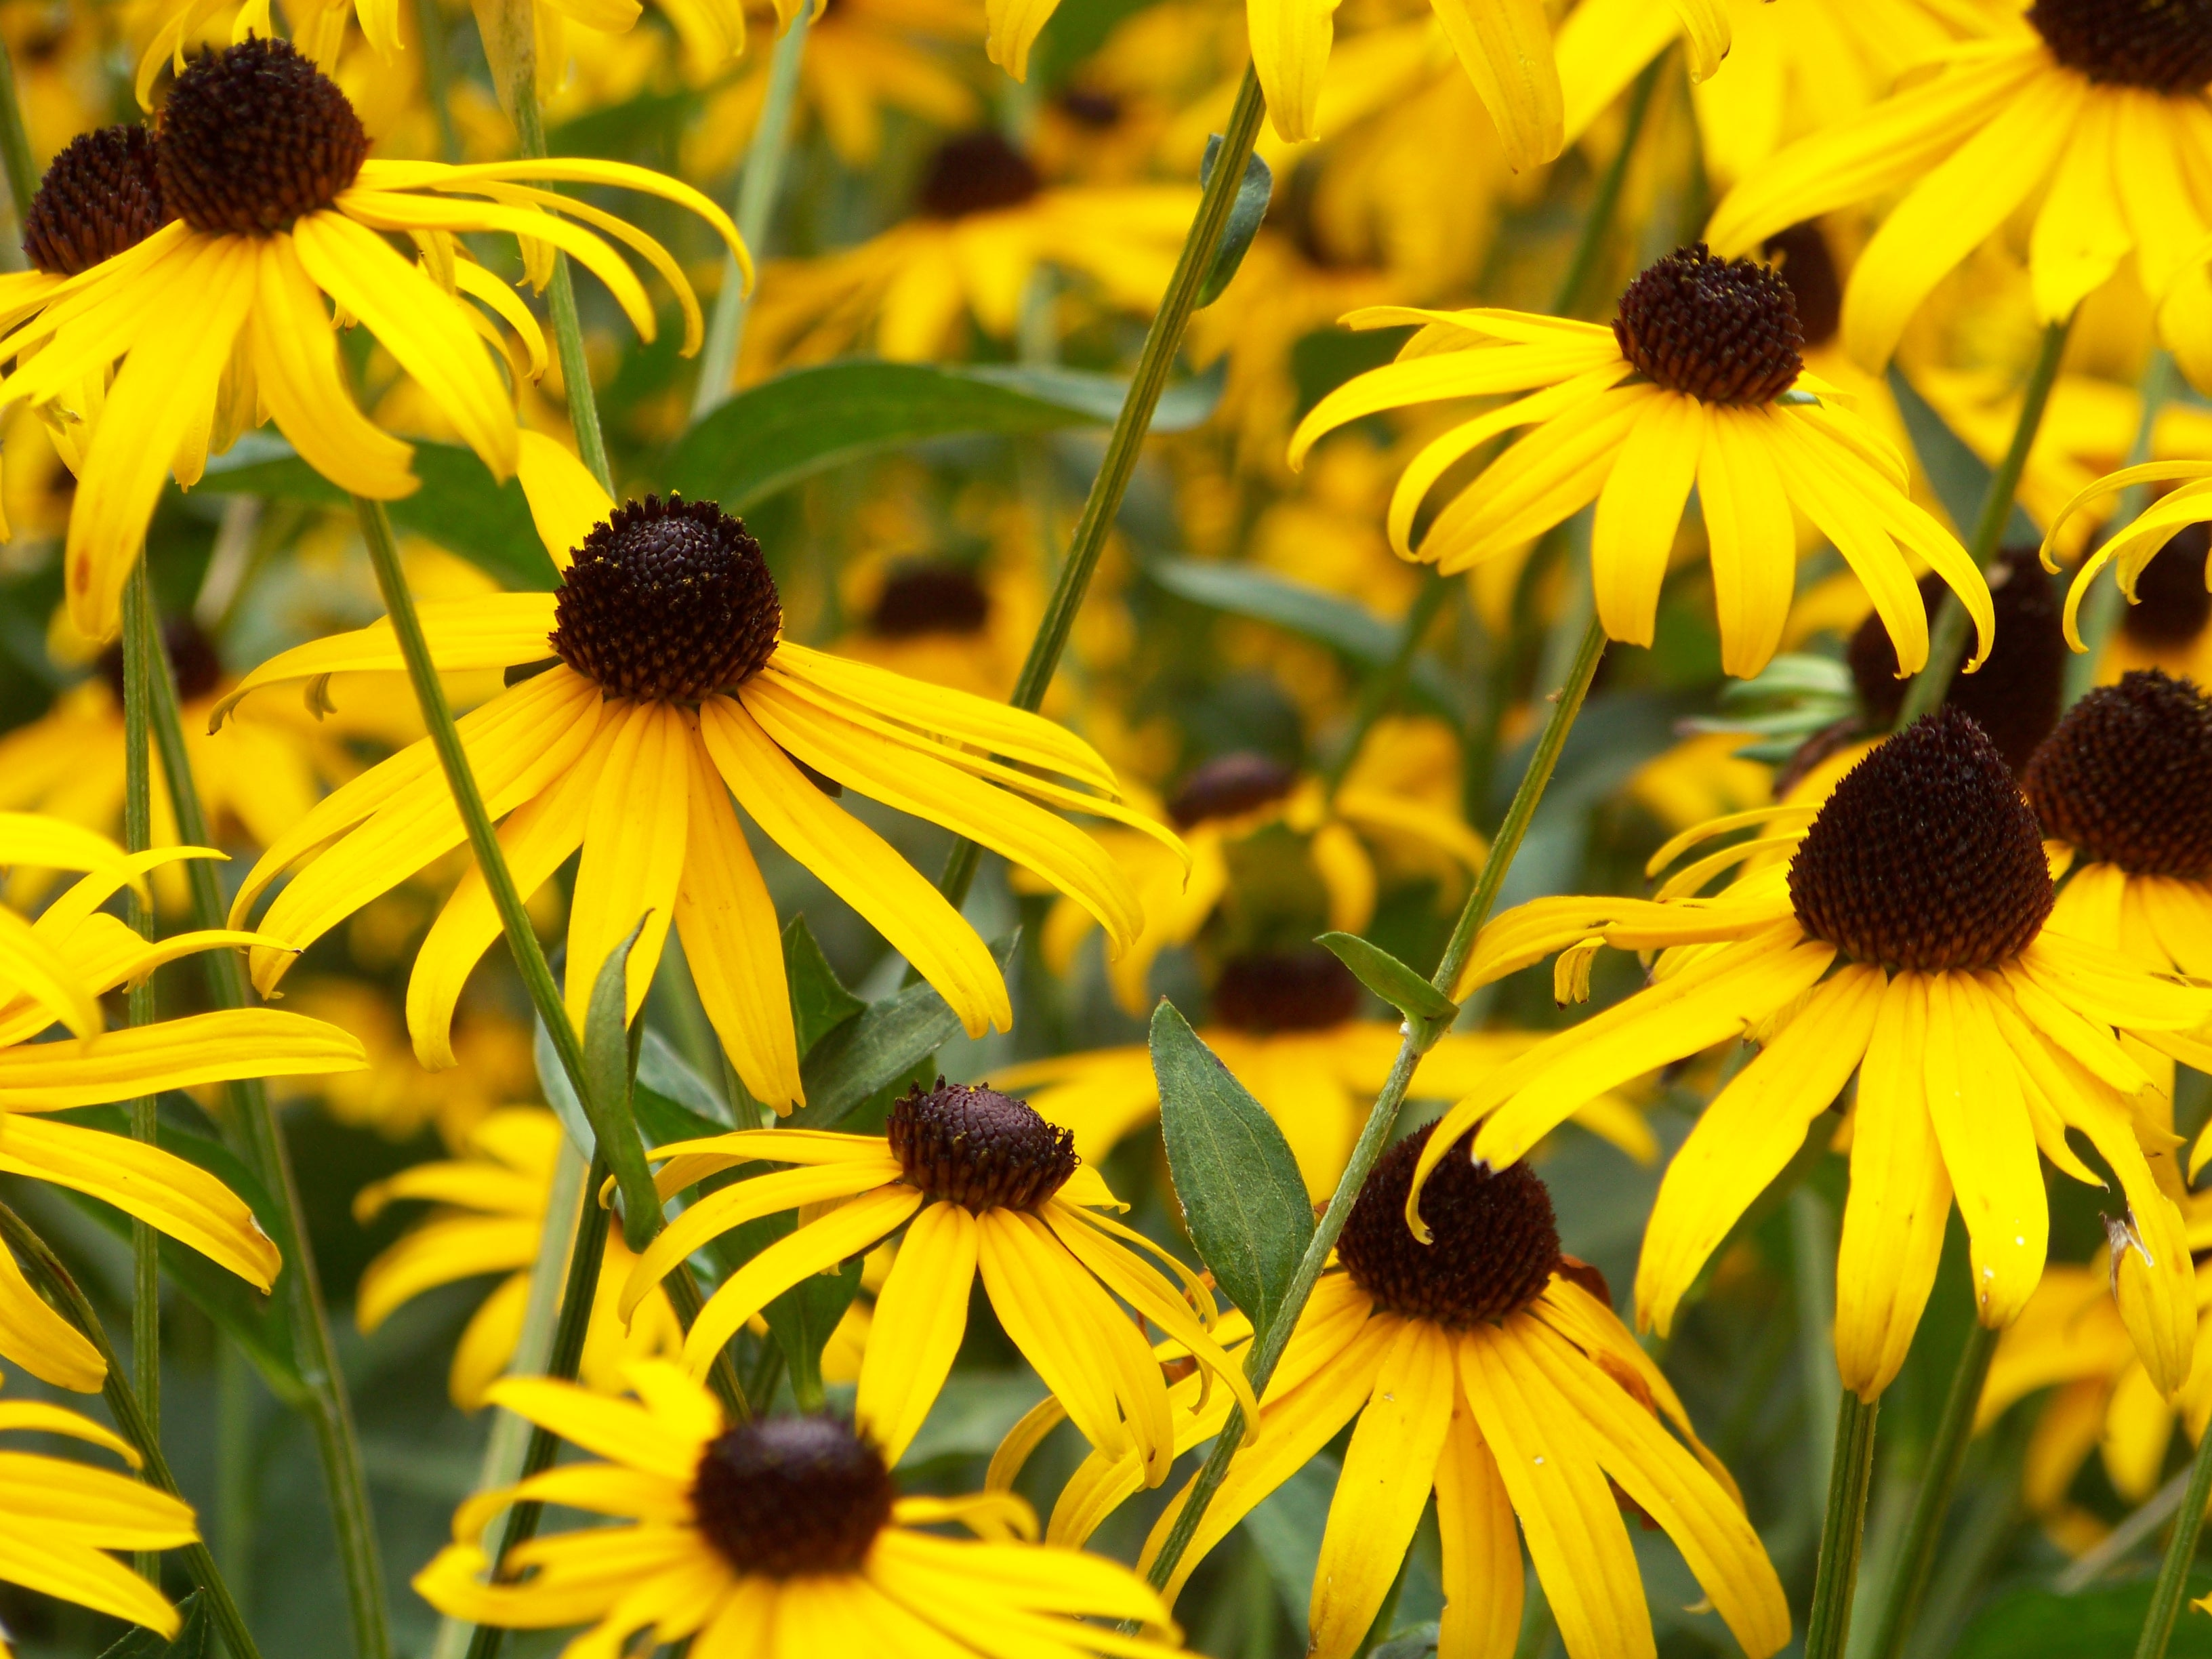 Yellow black-eyed Susan flowers in full bloom